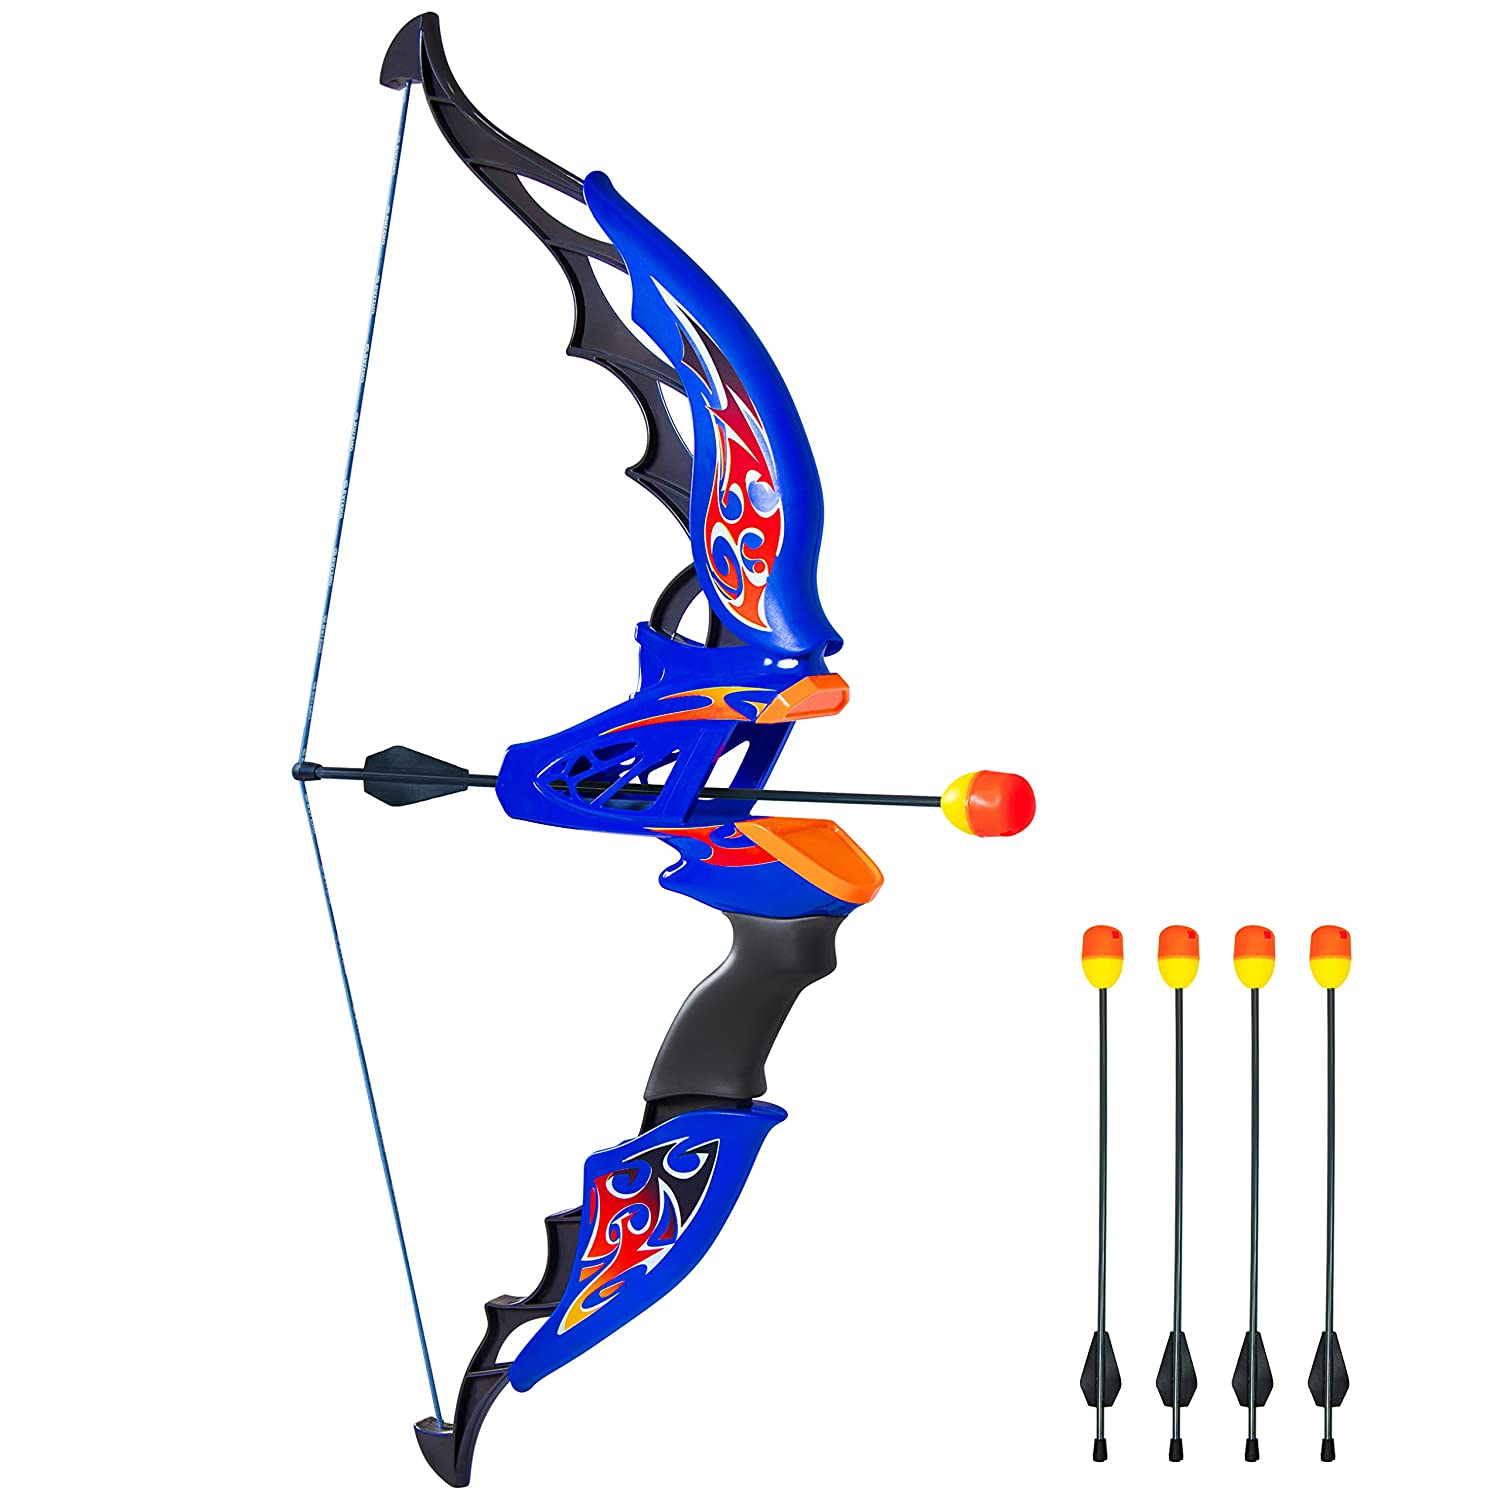 Best Choice Products Kids Toy Archery Bow And Arrow Set With Bow, 4 Soft Foam Dart Arrows